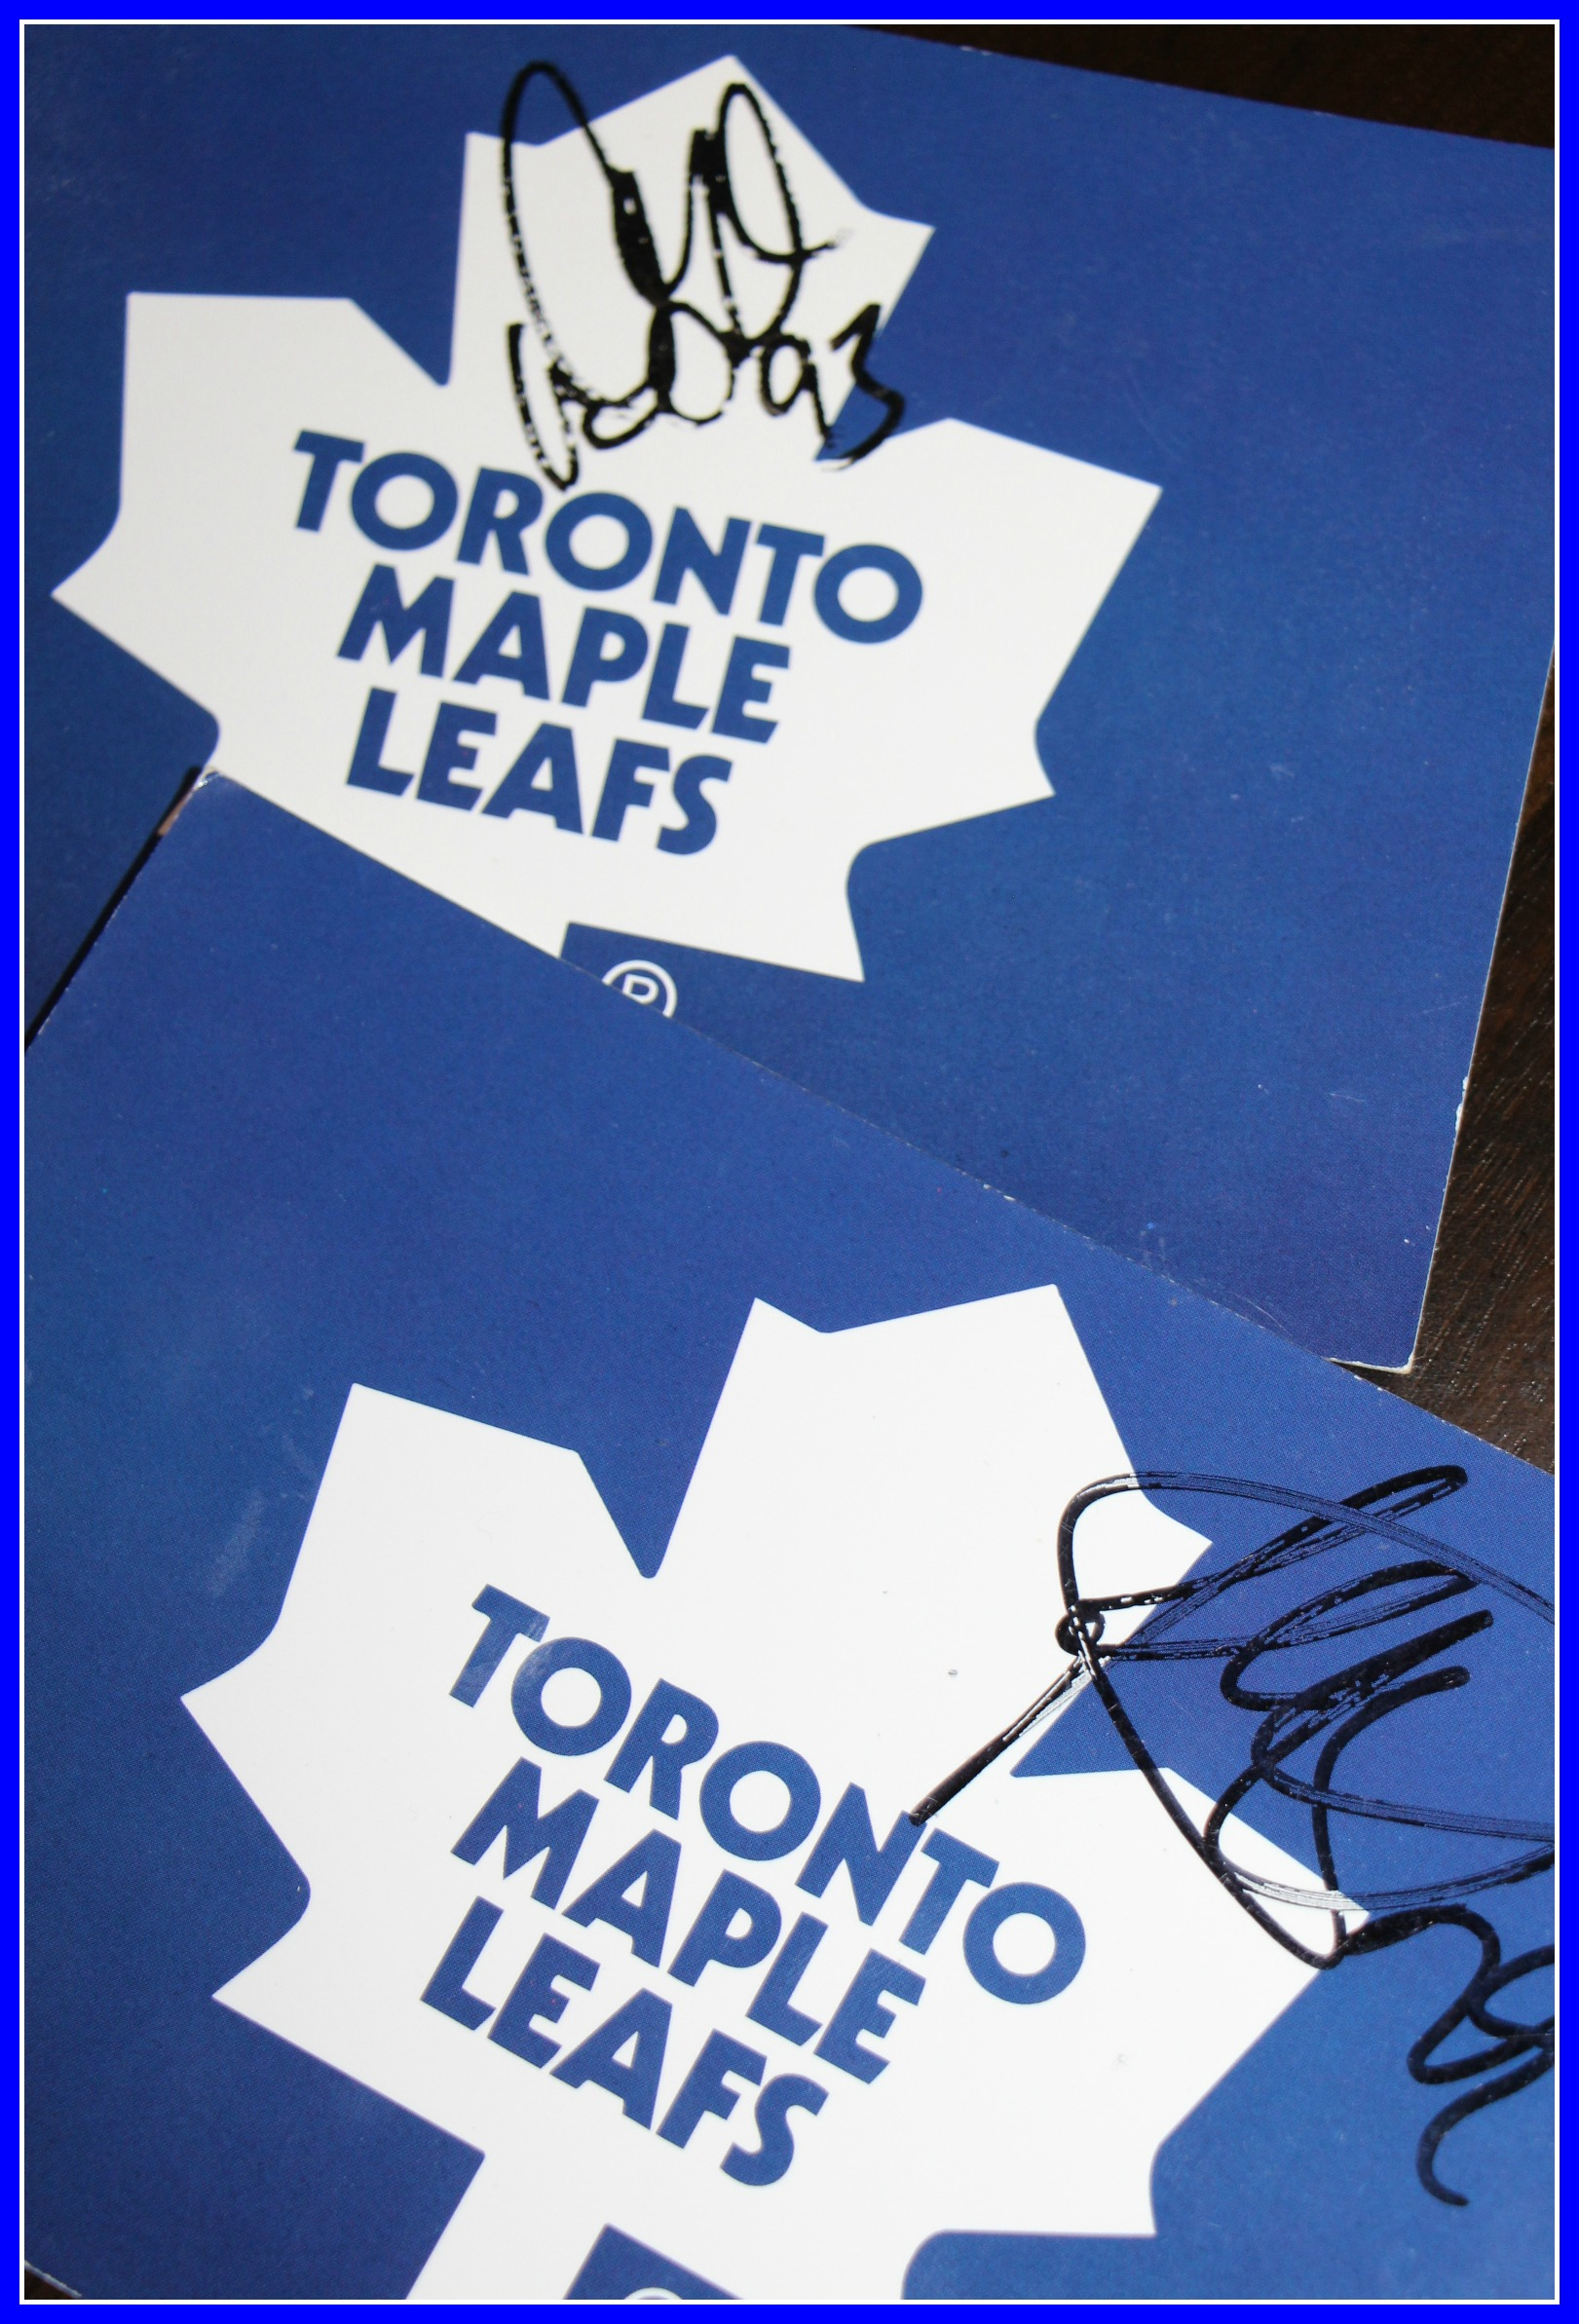 Calling all Toronto Maple Leafs Fans and their Lil Partner